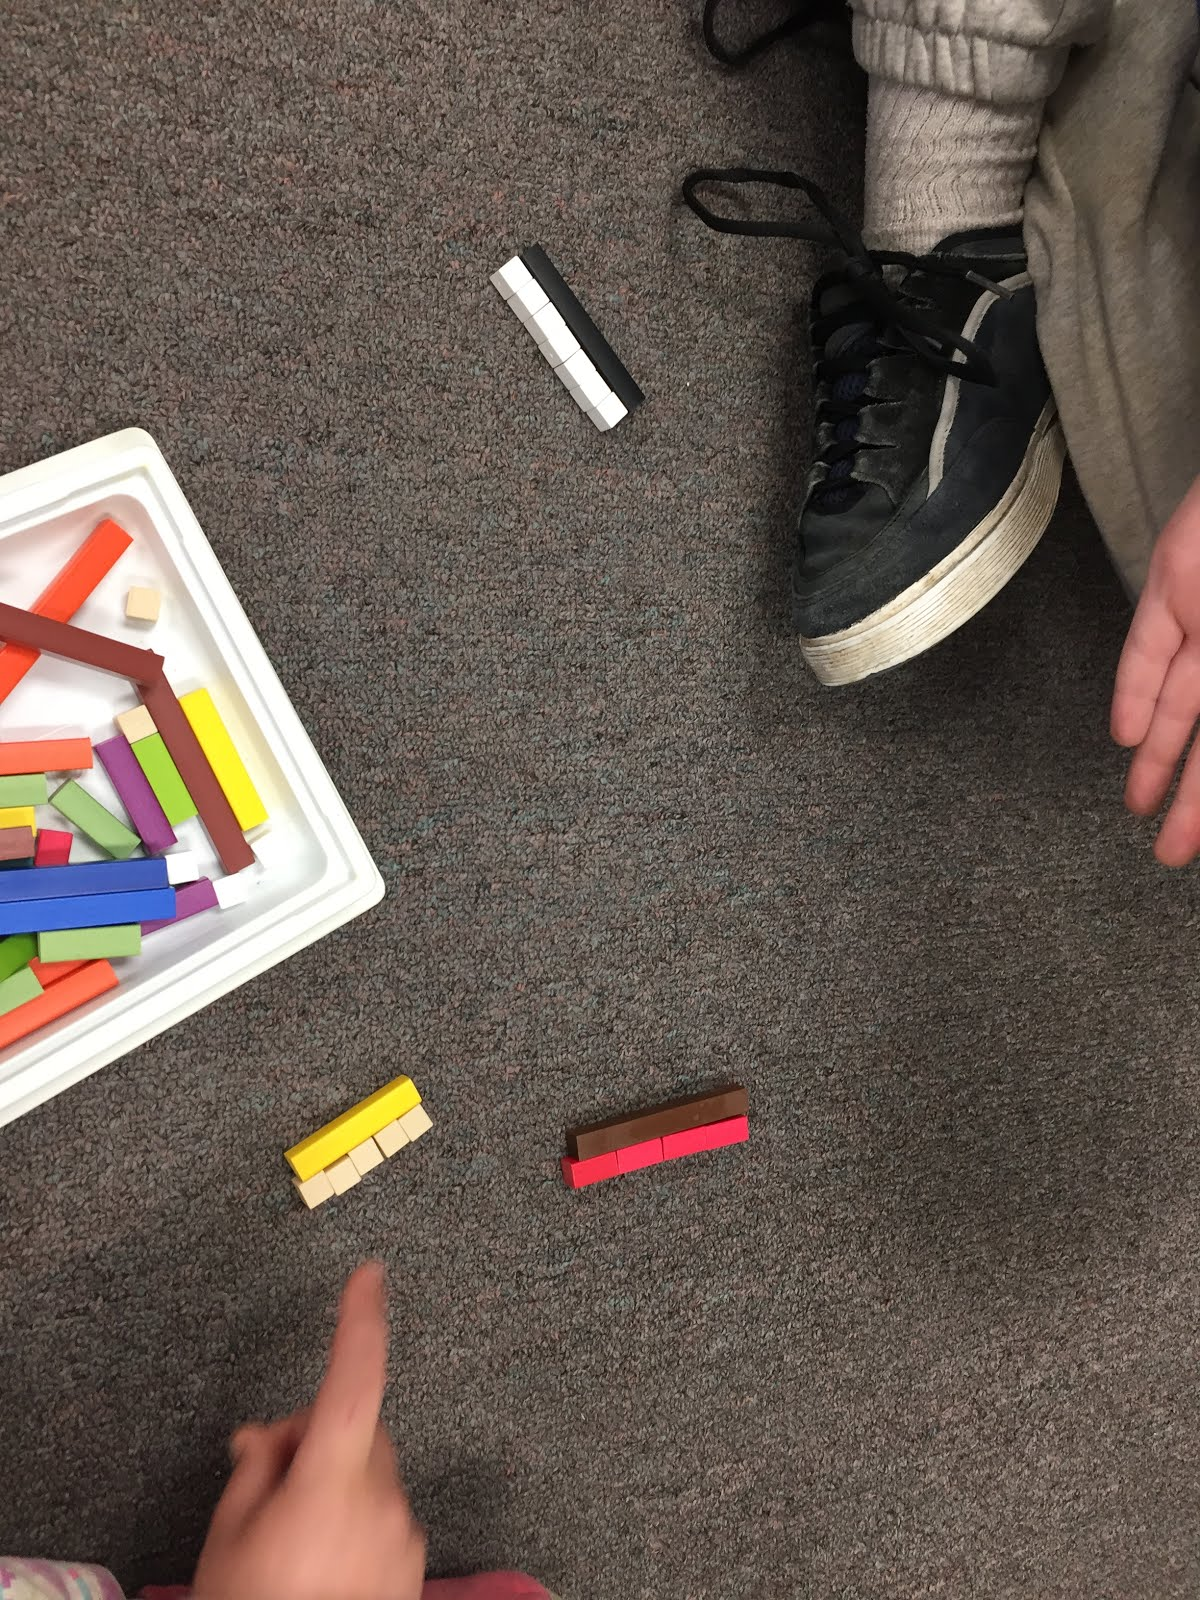 In The Activity Below, Students Used Cuisenaire Rods To Explore Fractions  Students Worked In Groups To Divide